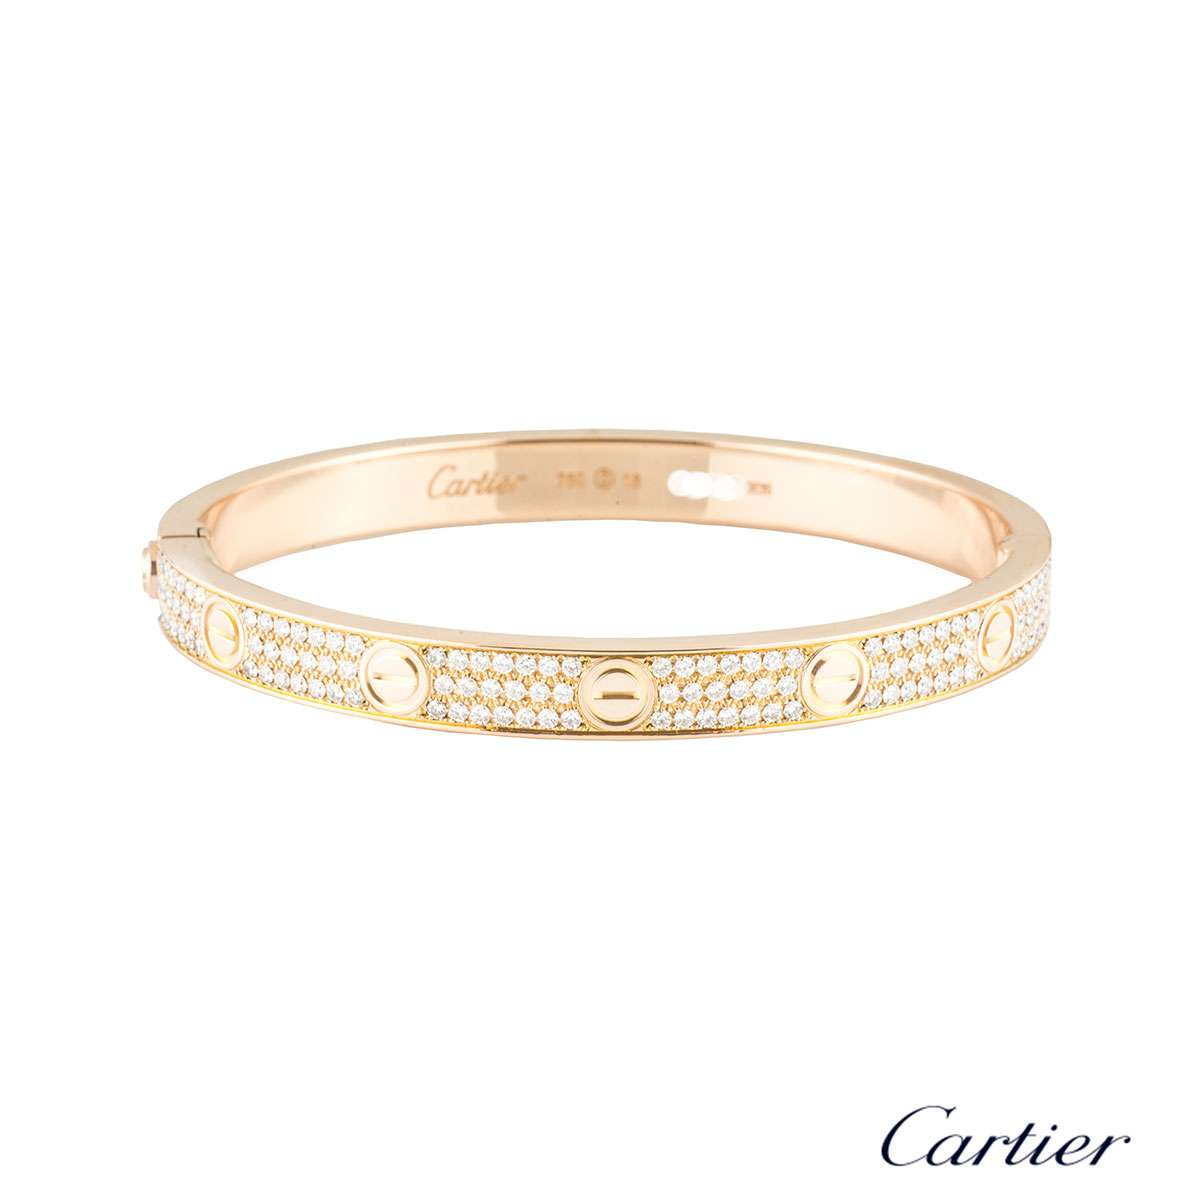 cartier bracelet sizes cartier bracelet size 18 n6036918 rich diamonds of 9040